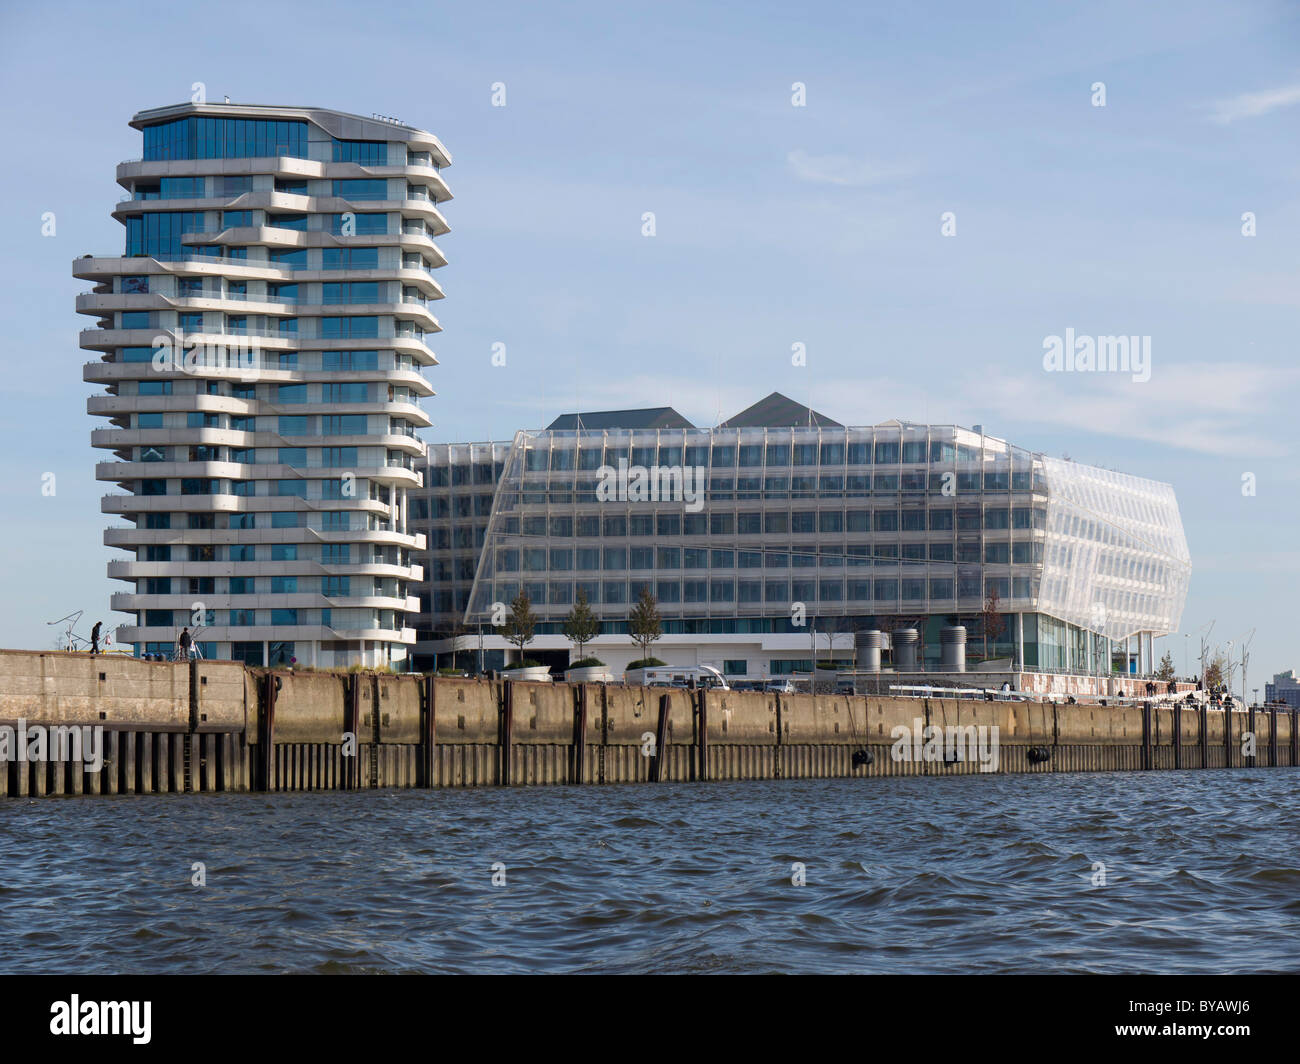 Marco-Polo-Tower and Unilever Zentrale headquarters, Strandkai, Hafencity district, Hanseatic City of Hamburg, Germany, - Stock Image